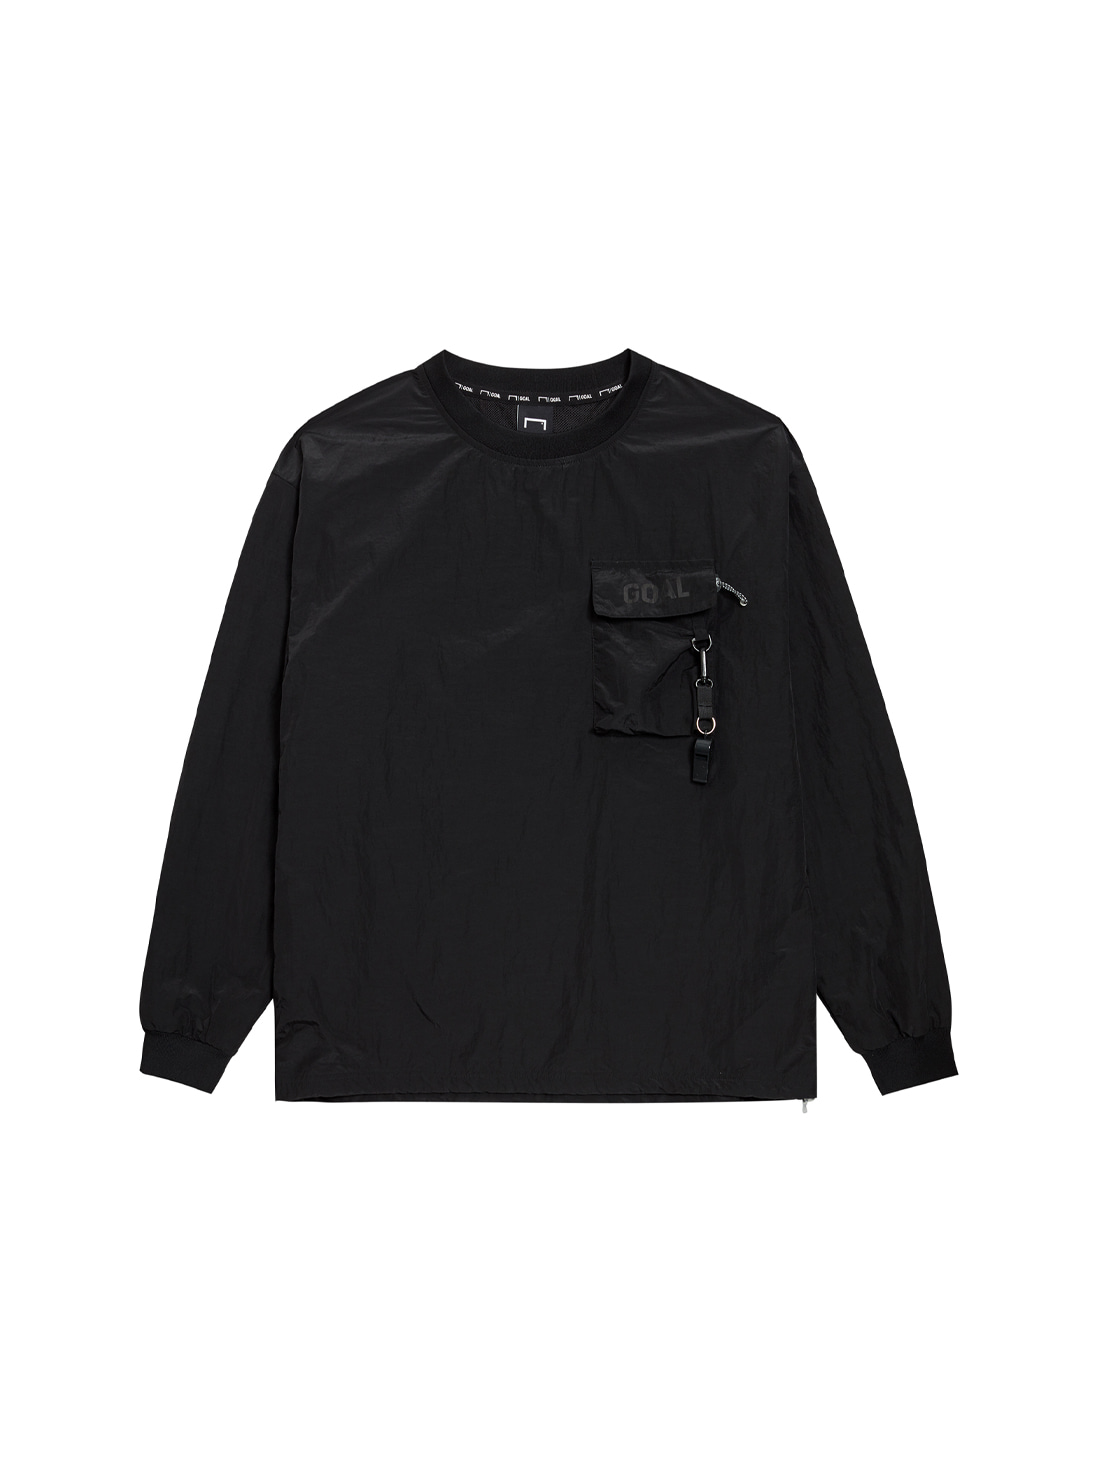 GOALSTUDIO NYLON METAL POCKET LONG SLEEVE TEE - BLACK